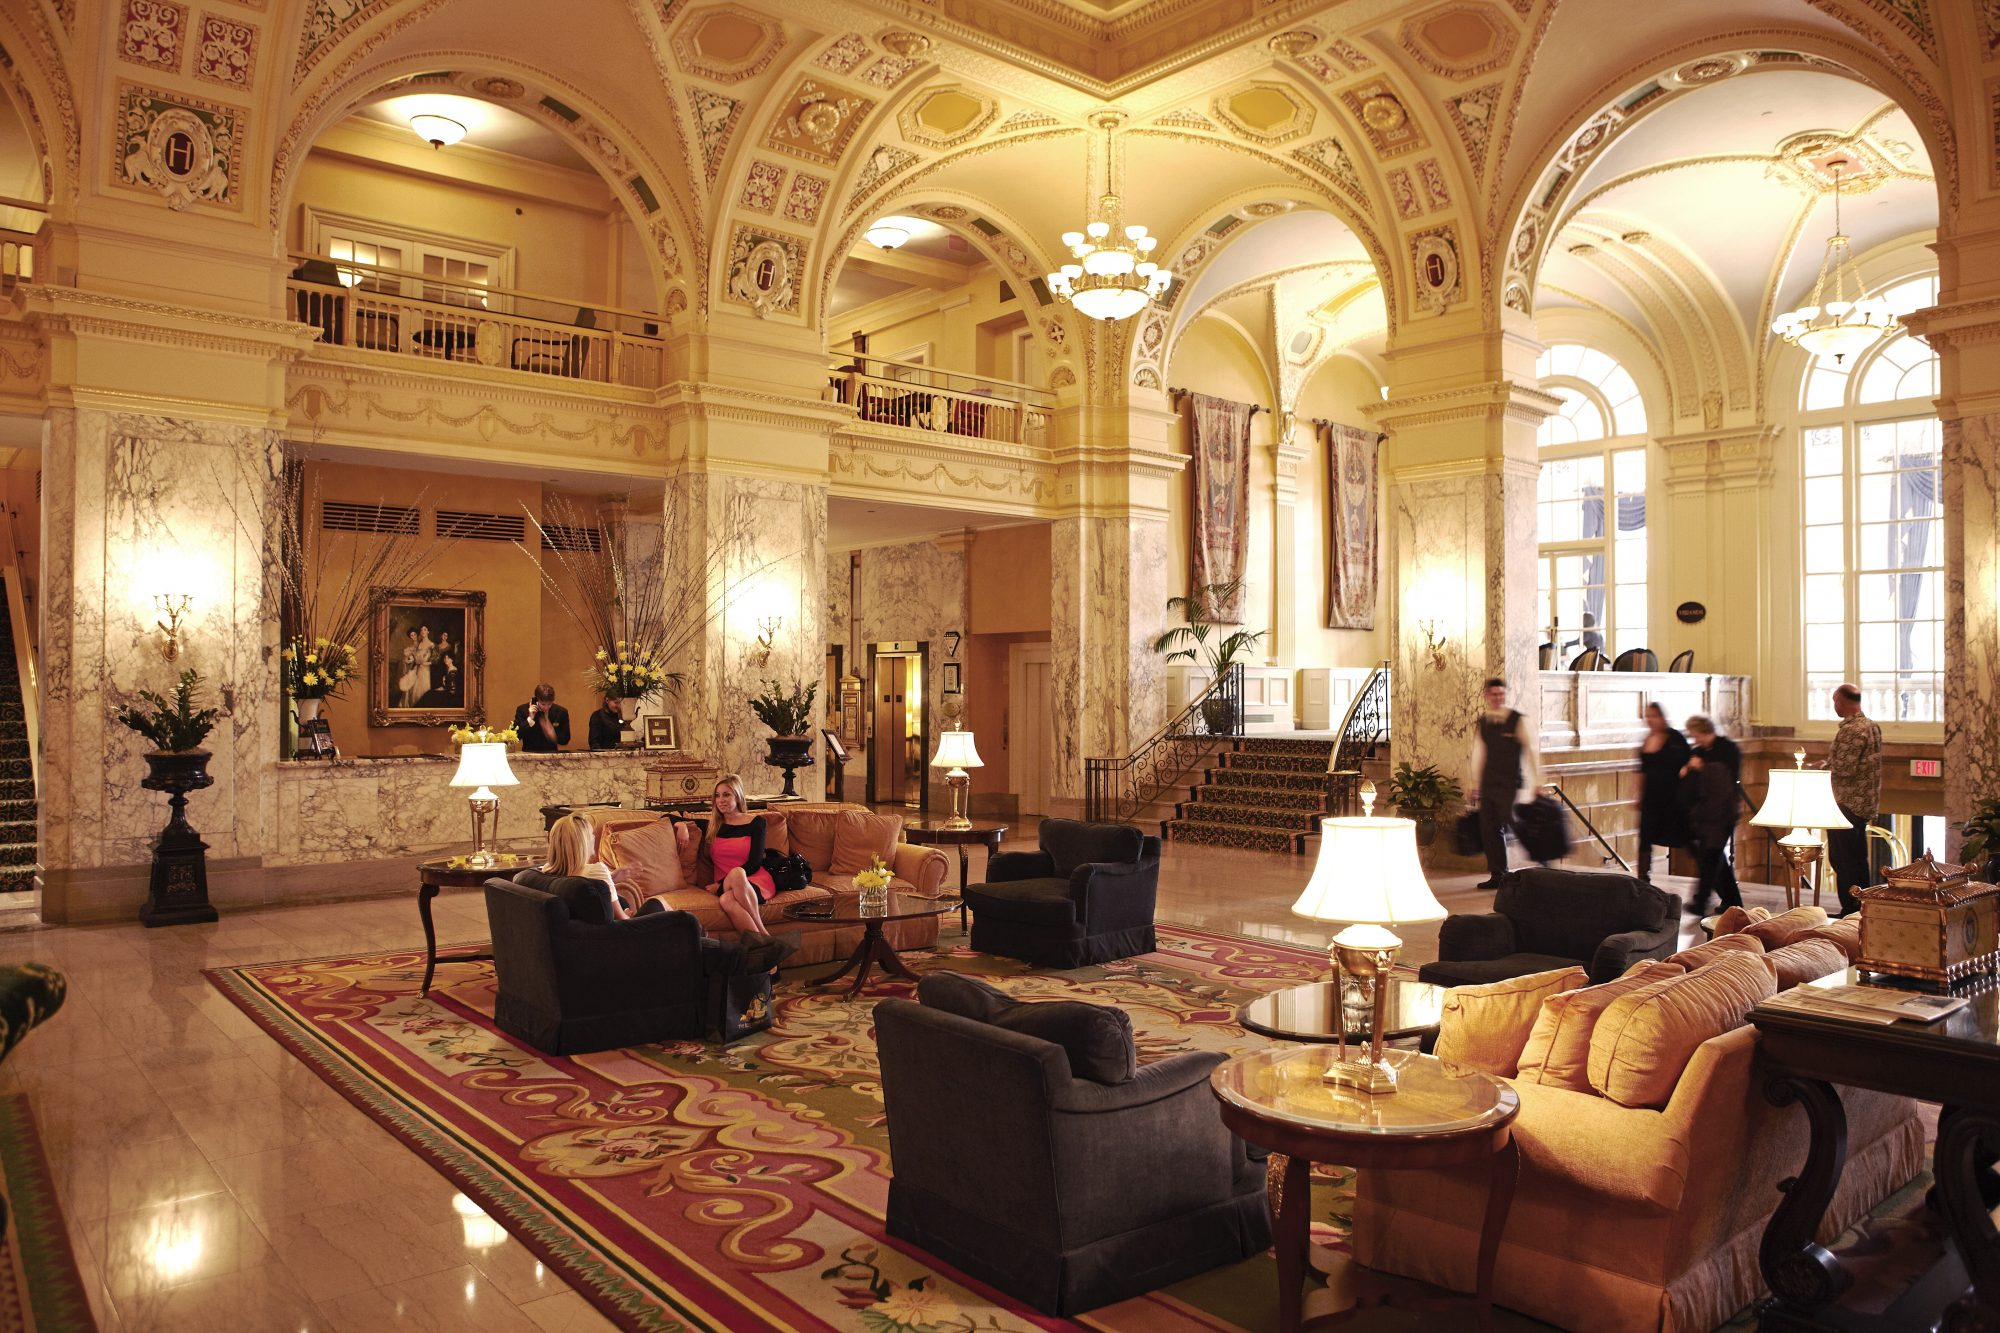 9. The Hermitage Hotel